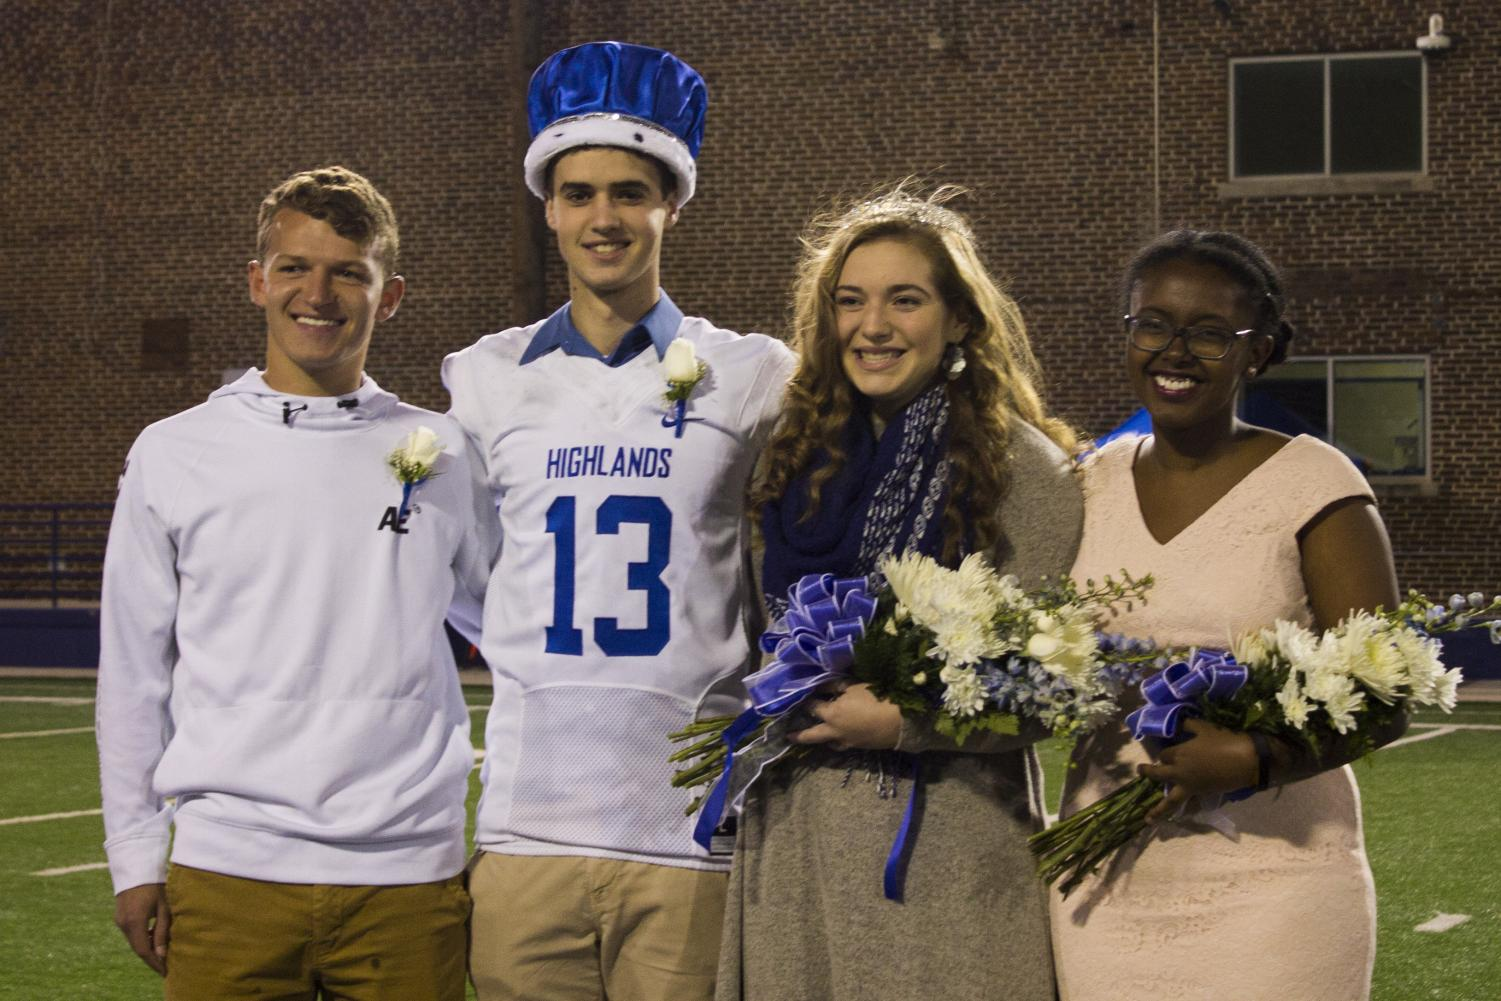 2017 Homecoming King Nick Gish, 2017 Homecoming King Austin King (Stand In - Trey Gabbard), 2018 Homecoming Queen Zoie Barth, and 2017 Homecoming Queen Bonny Lemma